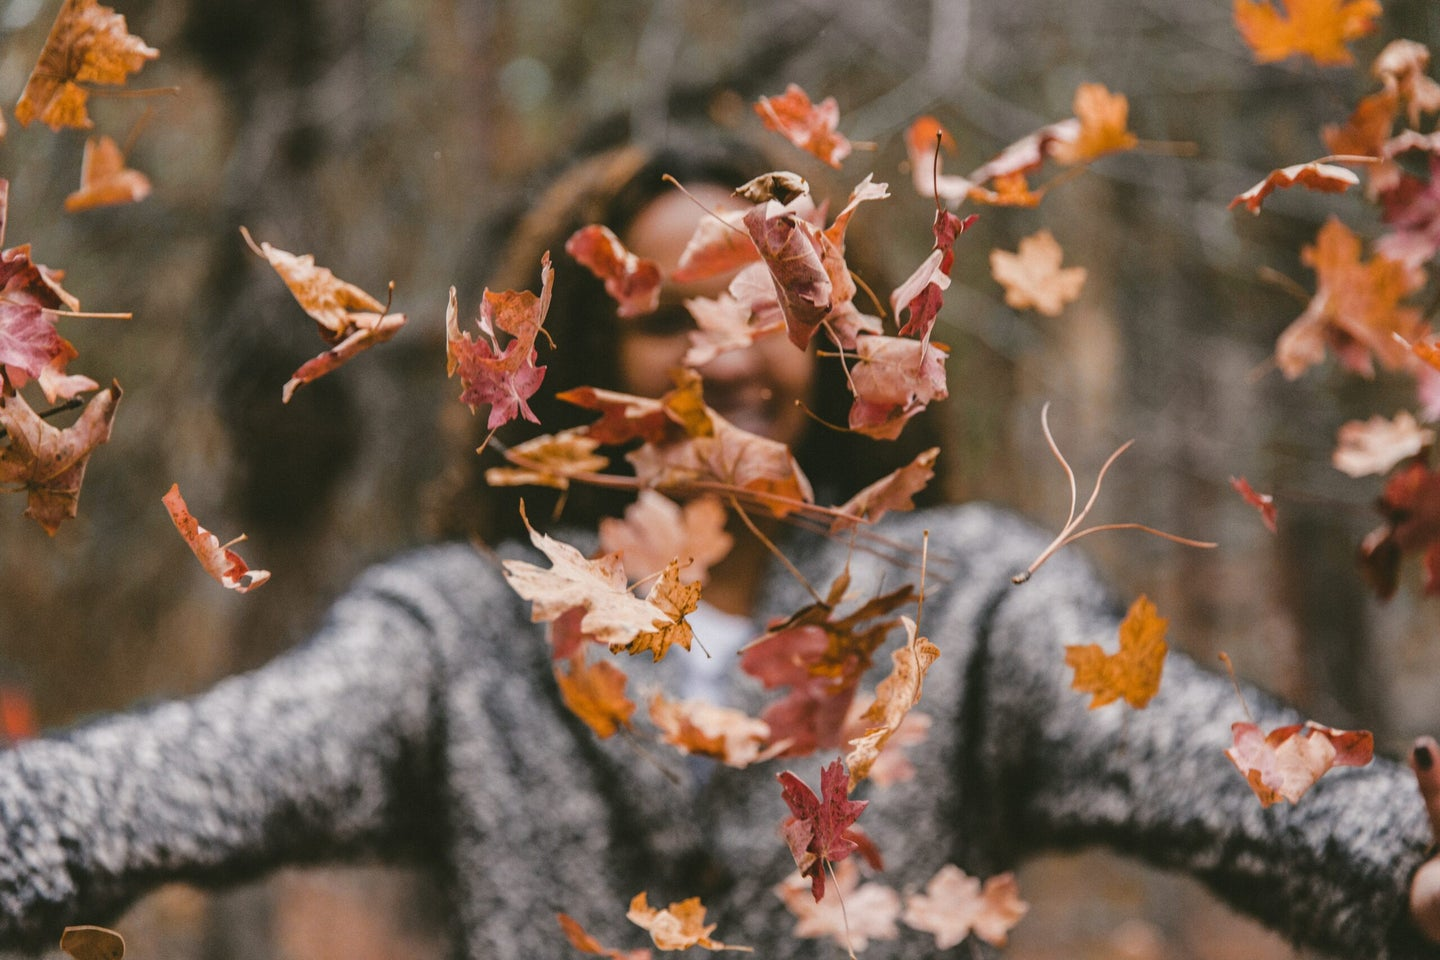 a woman throws fall leaves into the air while smiling